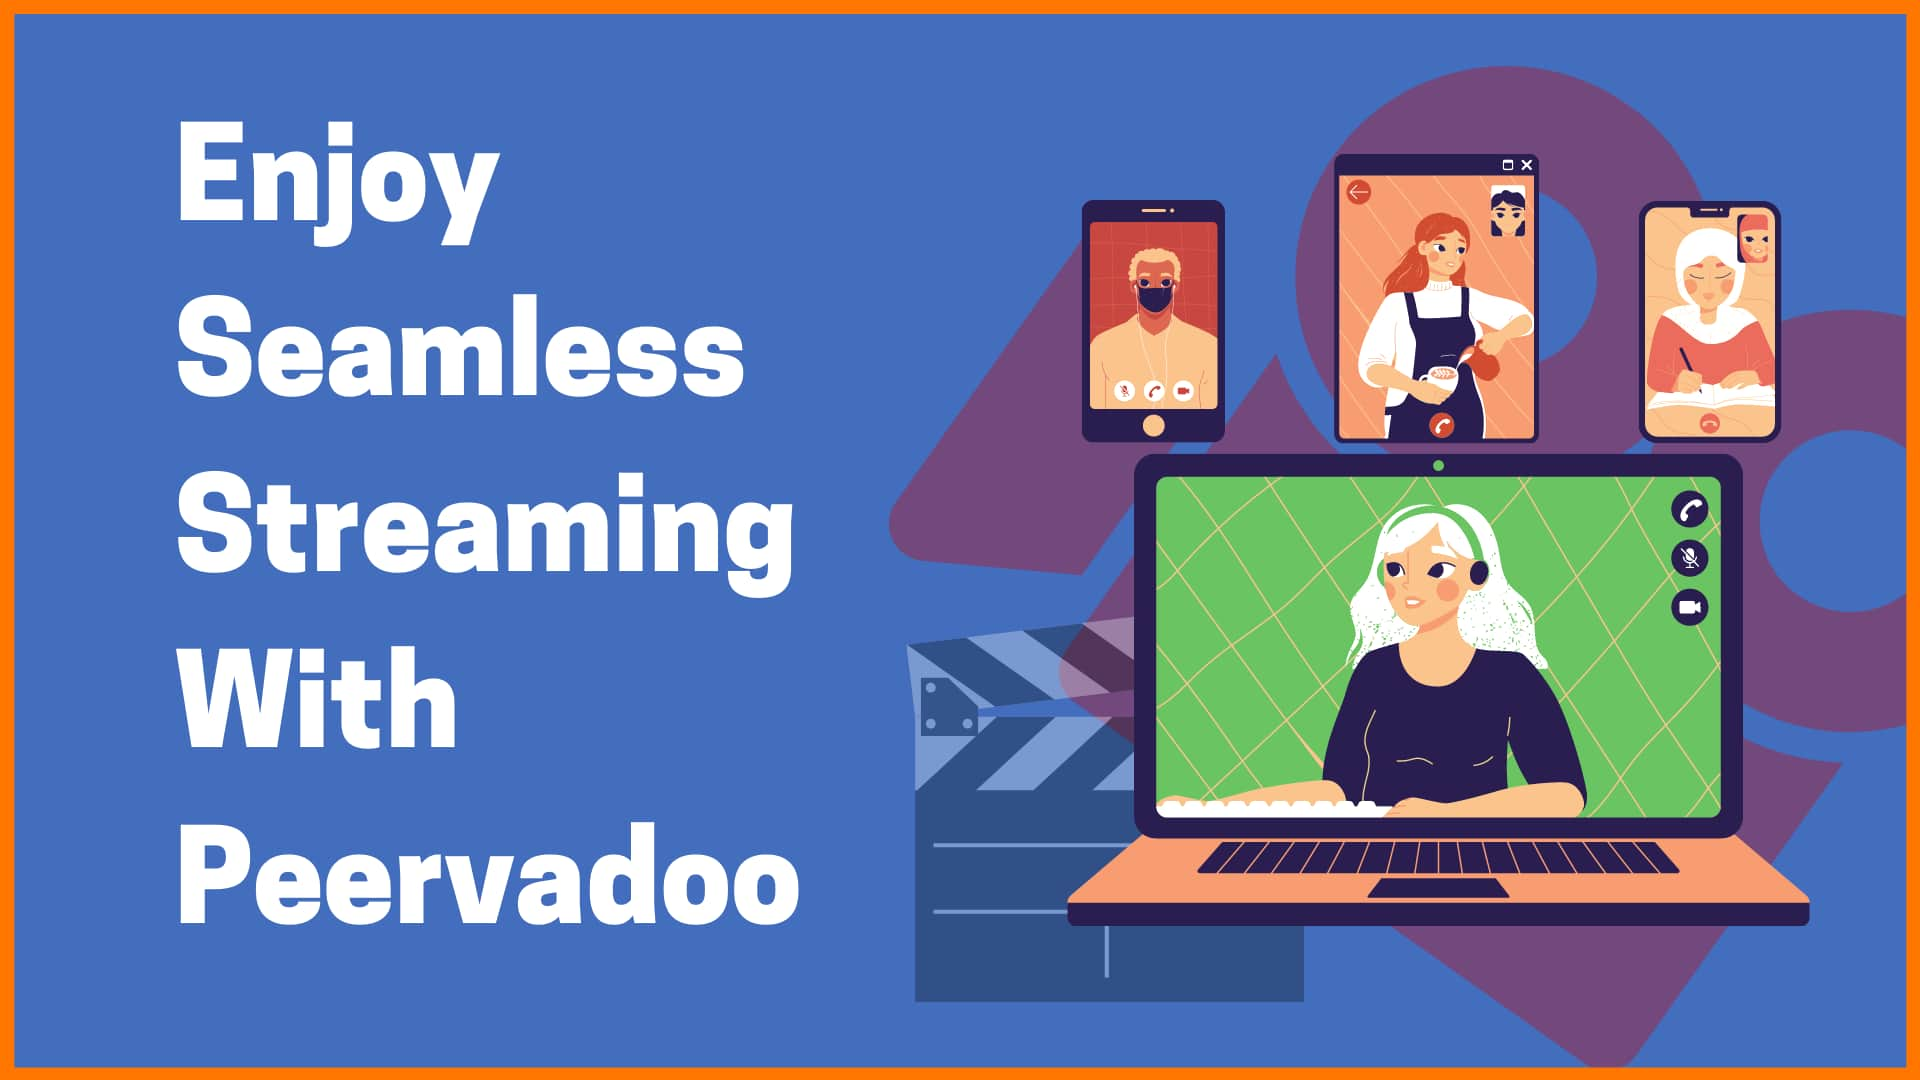 Stream Videos & Go Live With Peervadoo